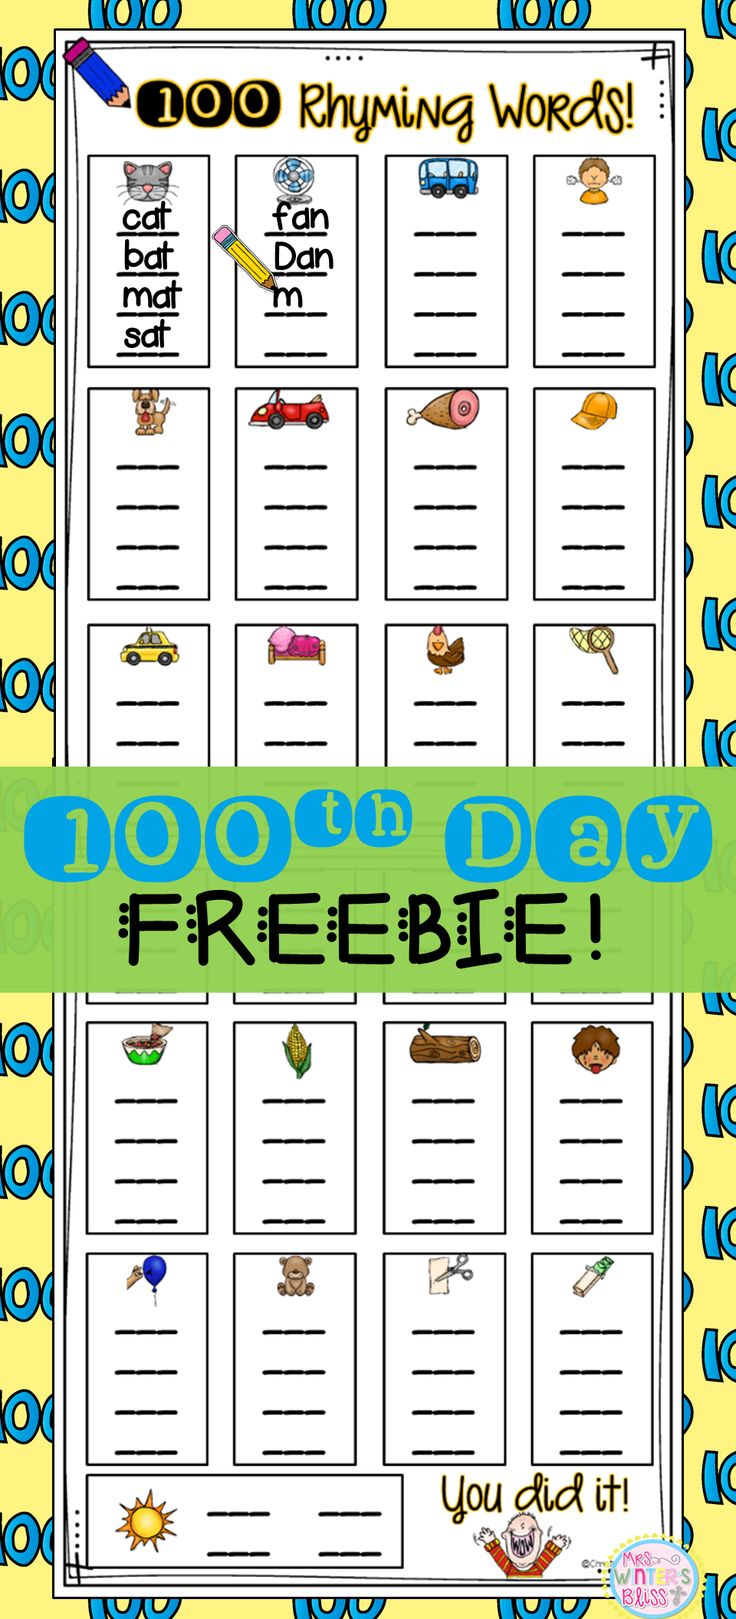 Bilingual dolphin counting card 6 clipart etc - Bilingual Dolphin Counting Card 6 Clipart Etc 100th Day Of School Freebie Perfect For A Download